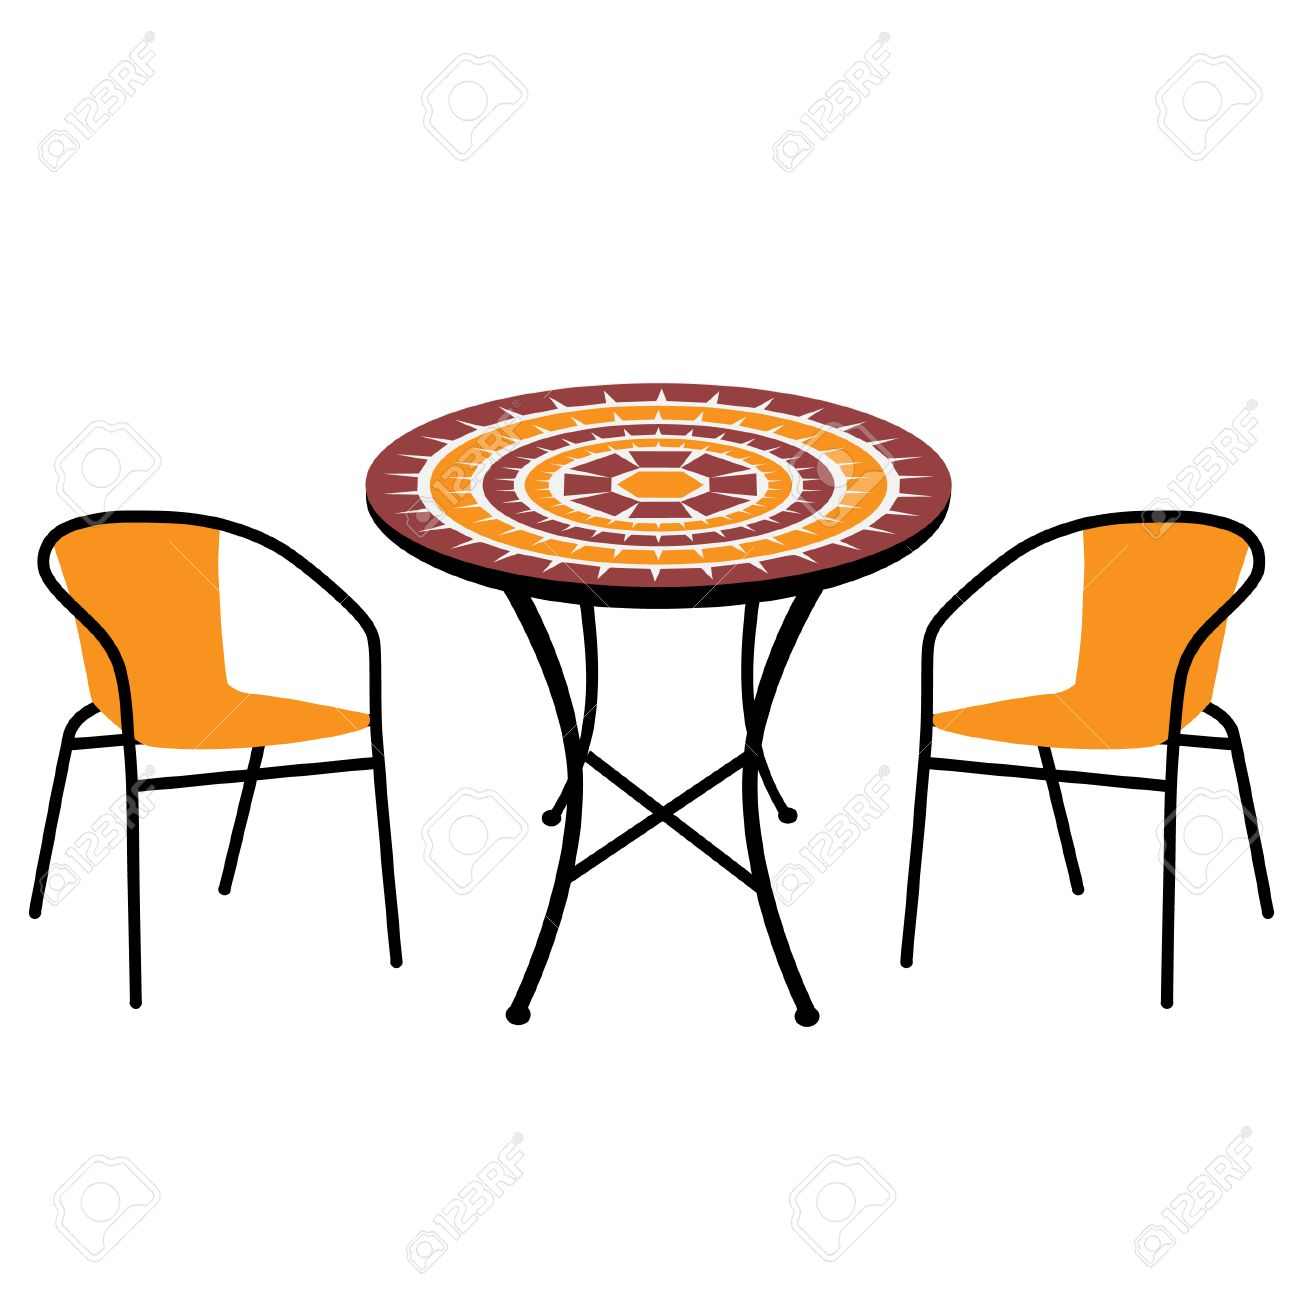 round table and chairs clipart. vintage outdoor table and chairs isolated, round vector stock - 38810480 clipart